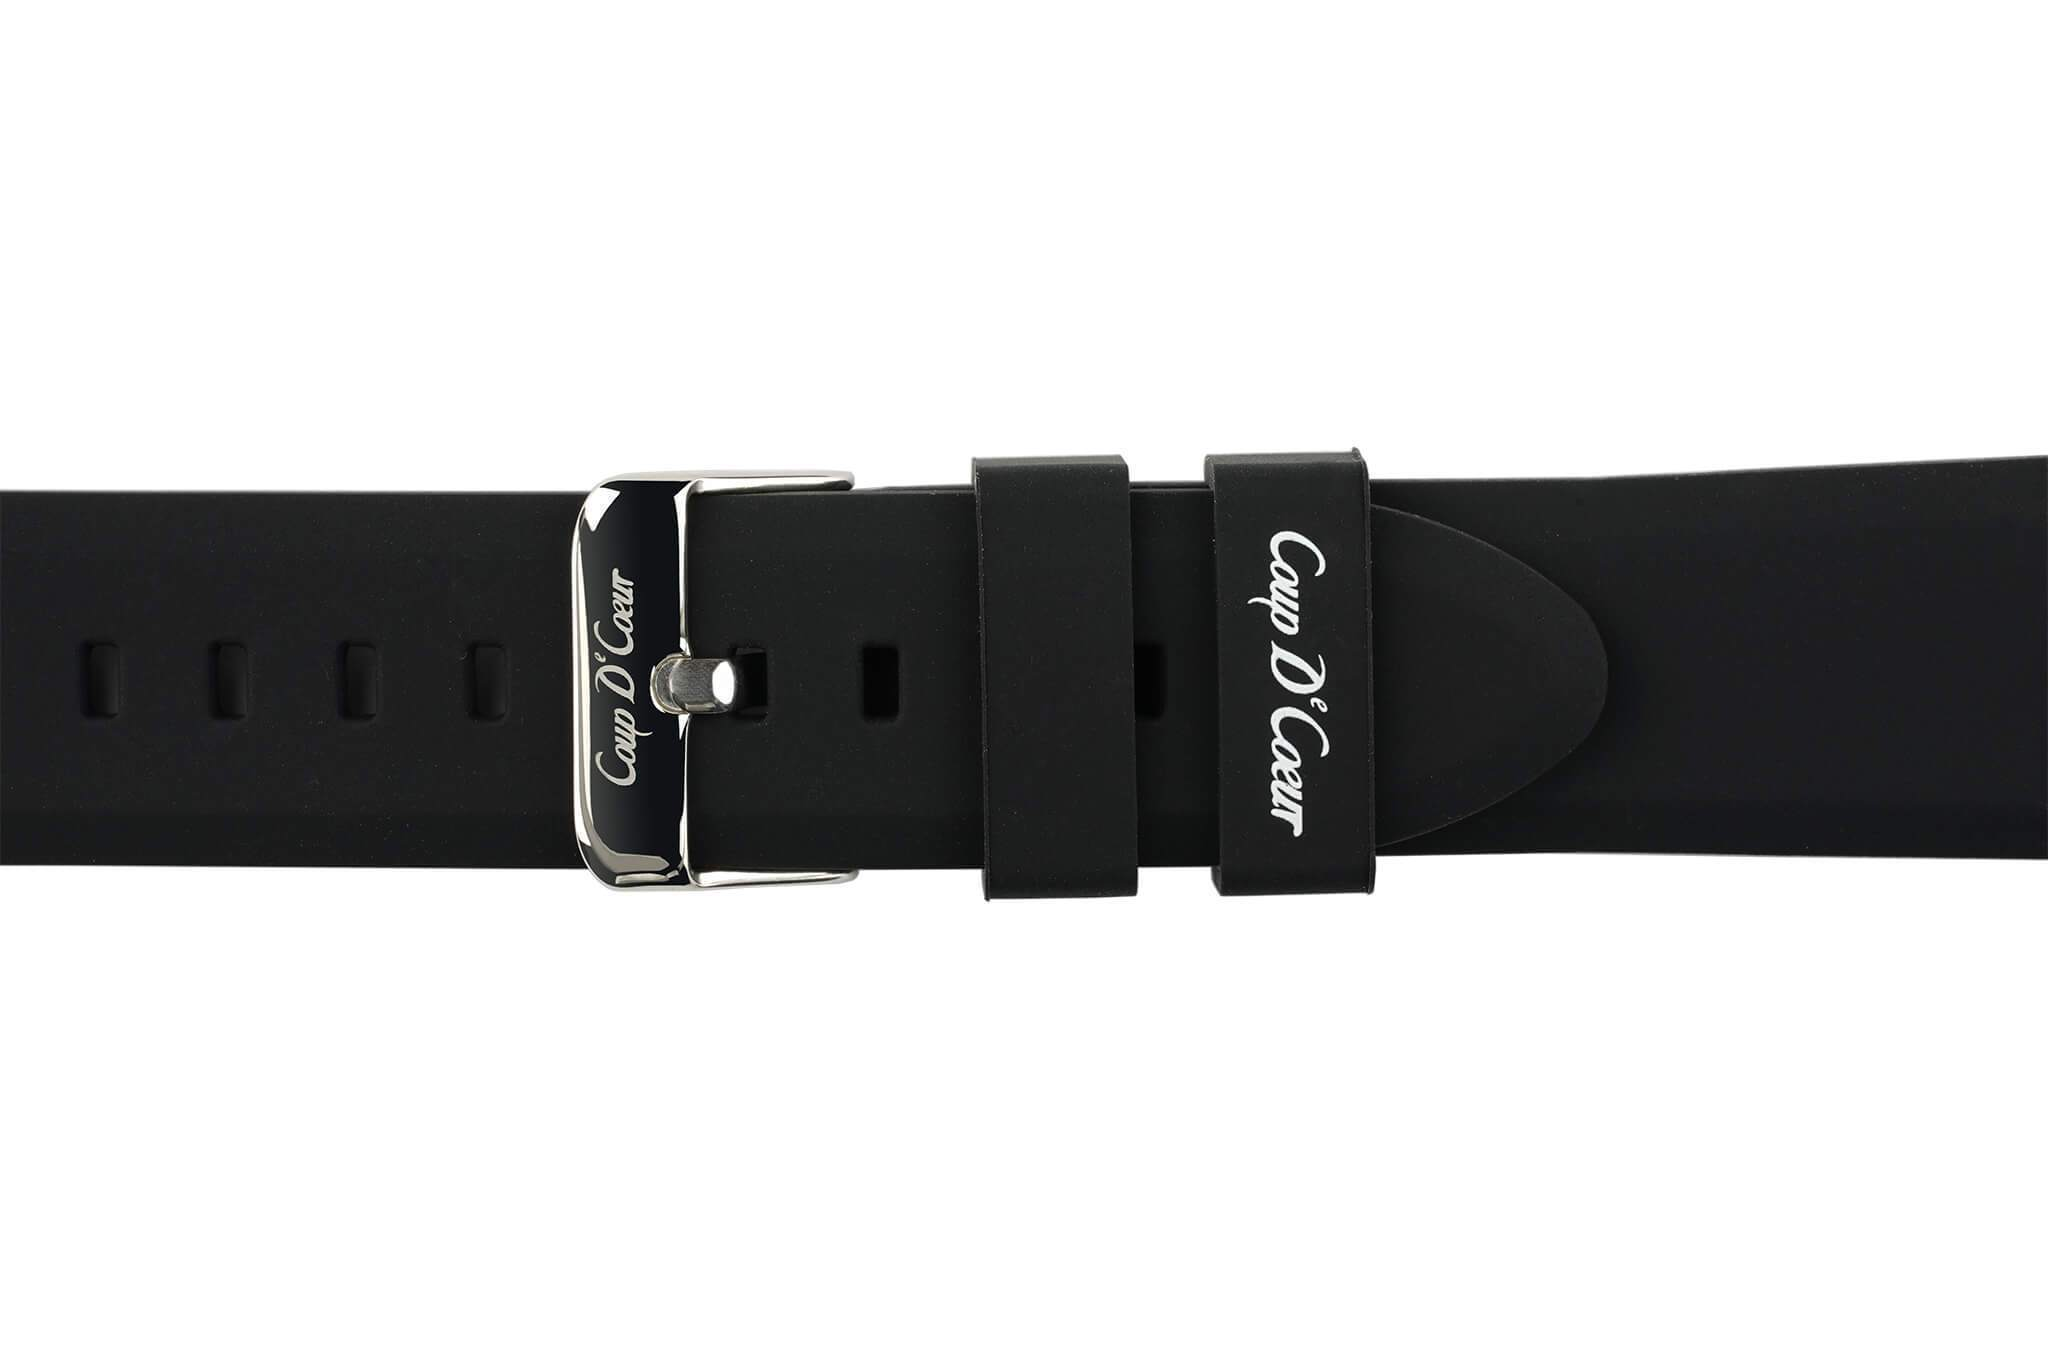 Watch Straps - 22mm Black Rubber Watch Strap